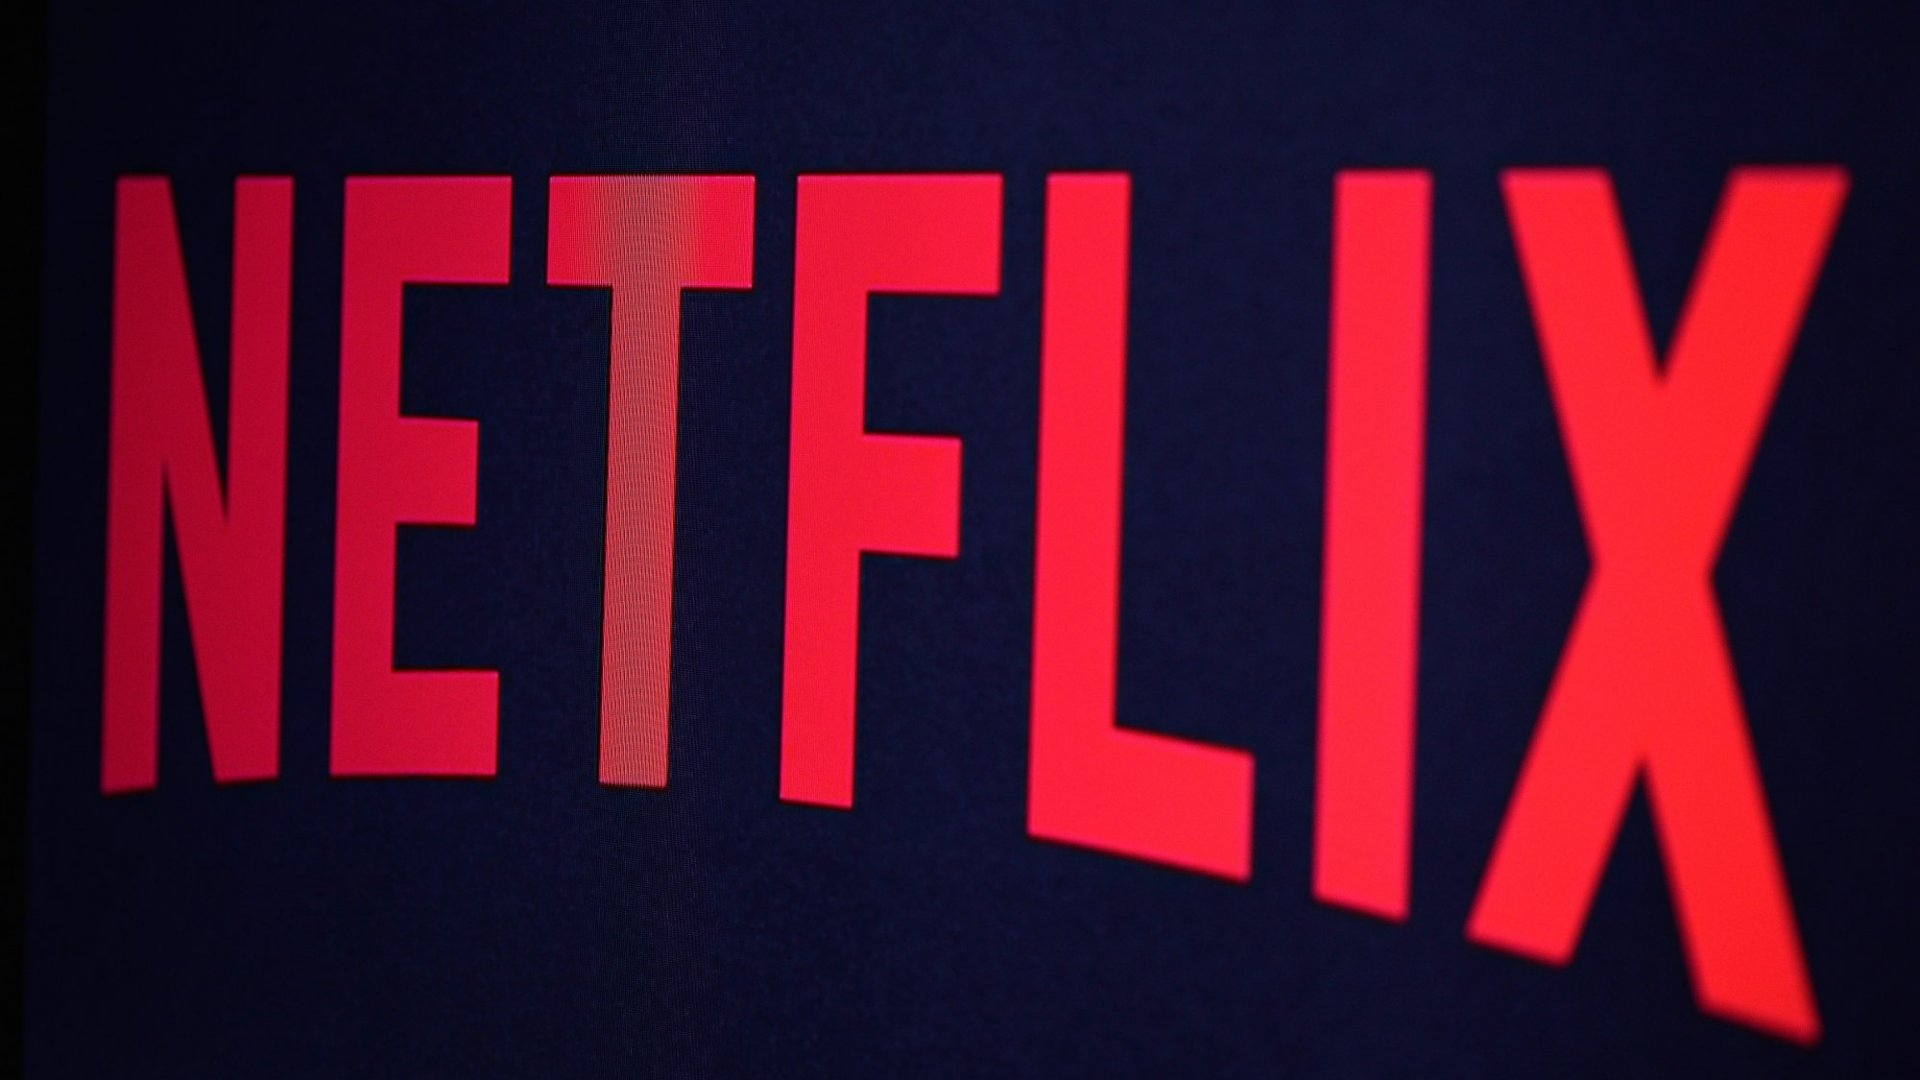 All Your Burning Questions About Working at Netflix, Answered